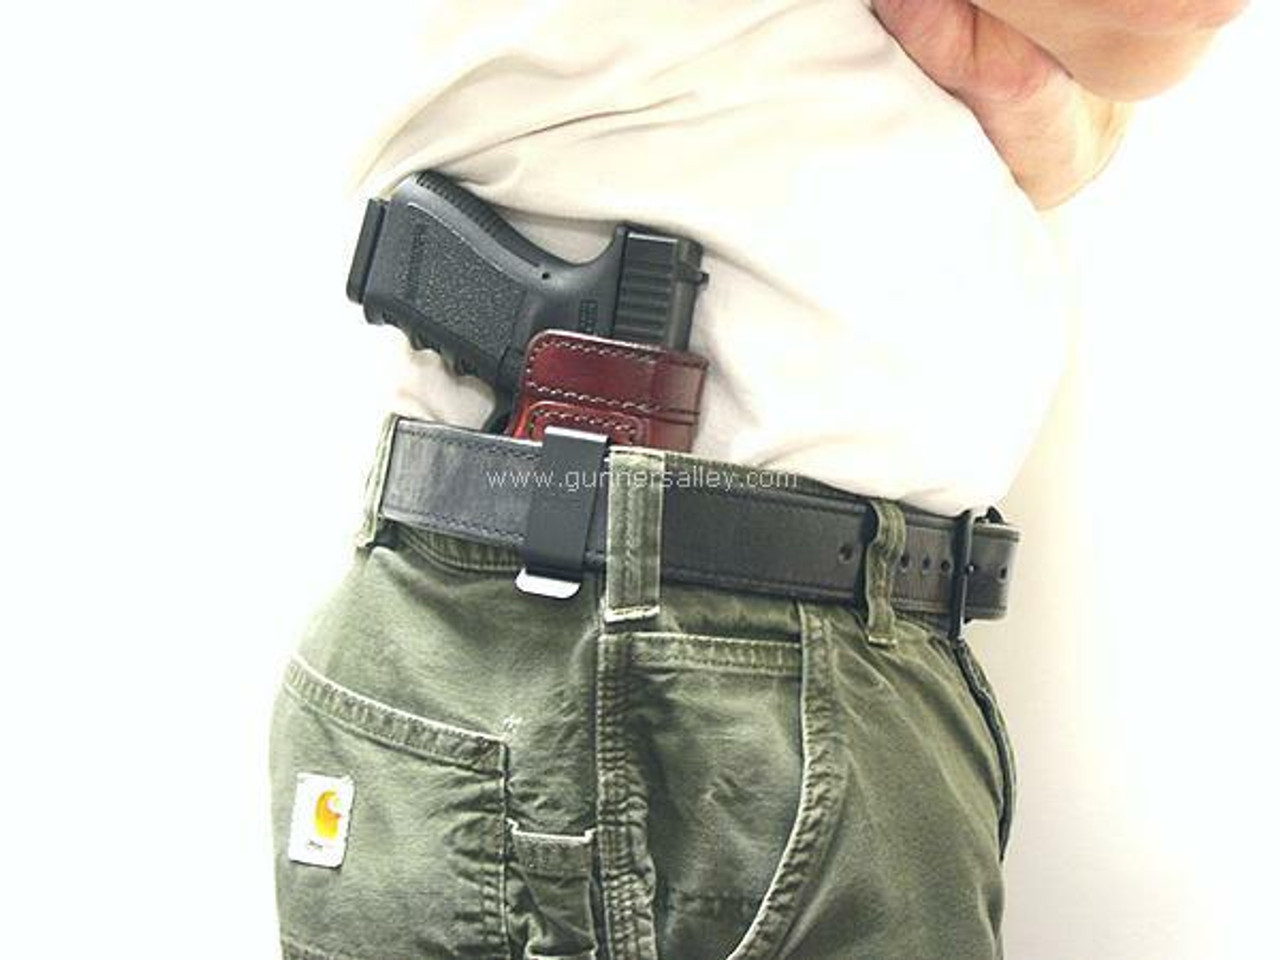 RH Model - Shown on the Belt with a Glock 19 for Demonstration Purposes